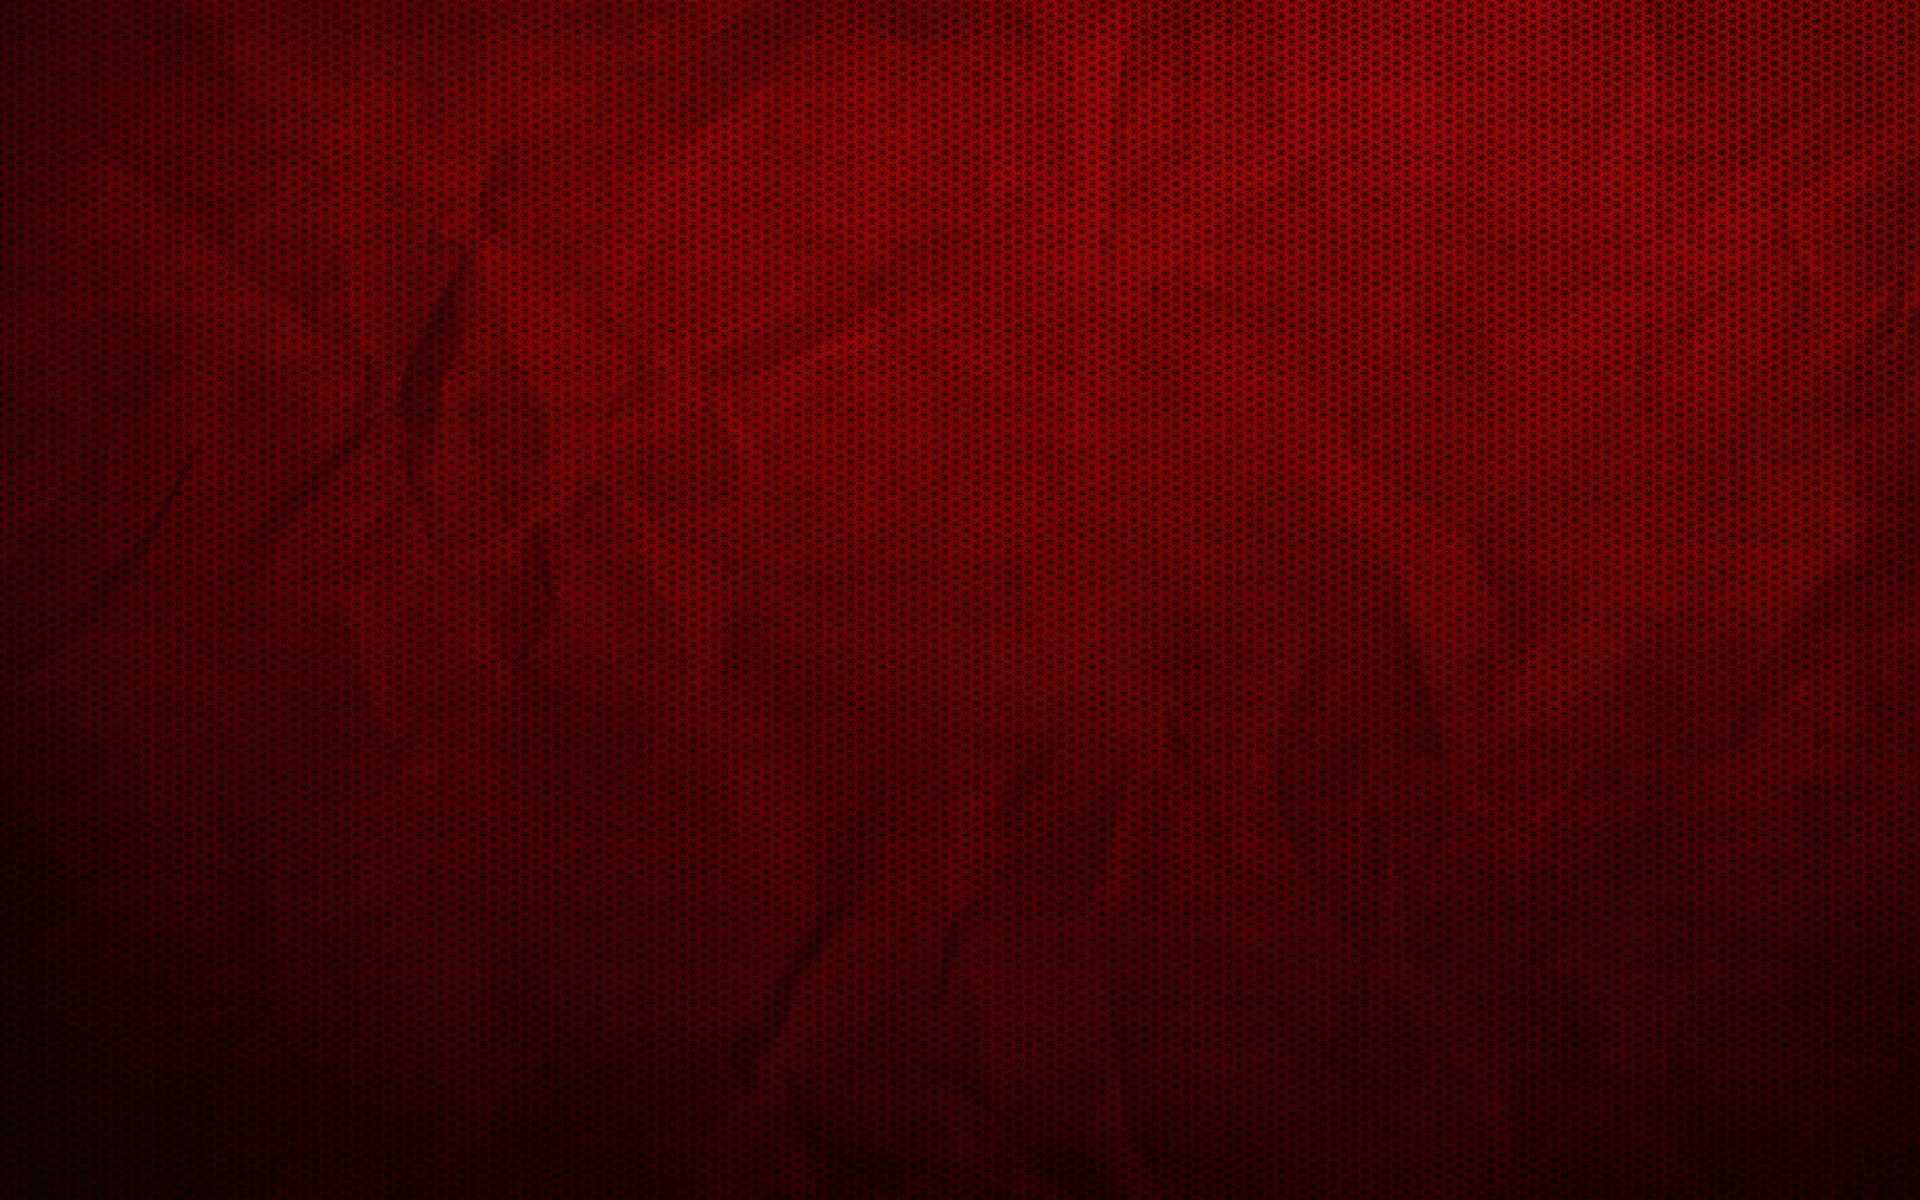 Marun dark red color plain background hd wallpapers gallery Black 1920x1200